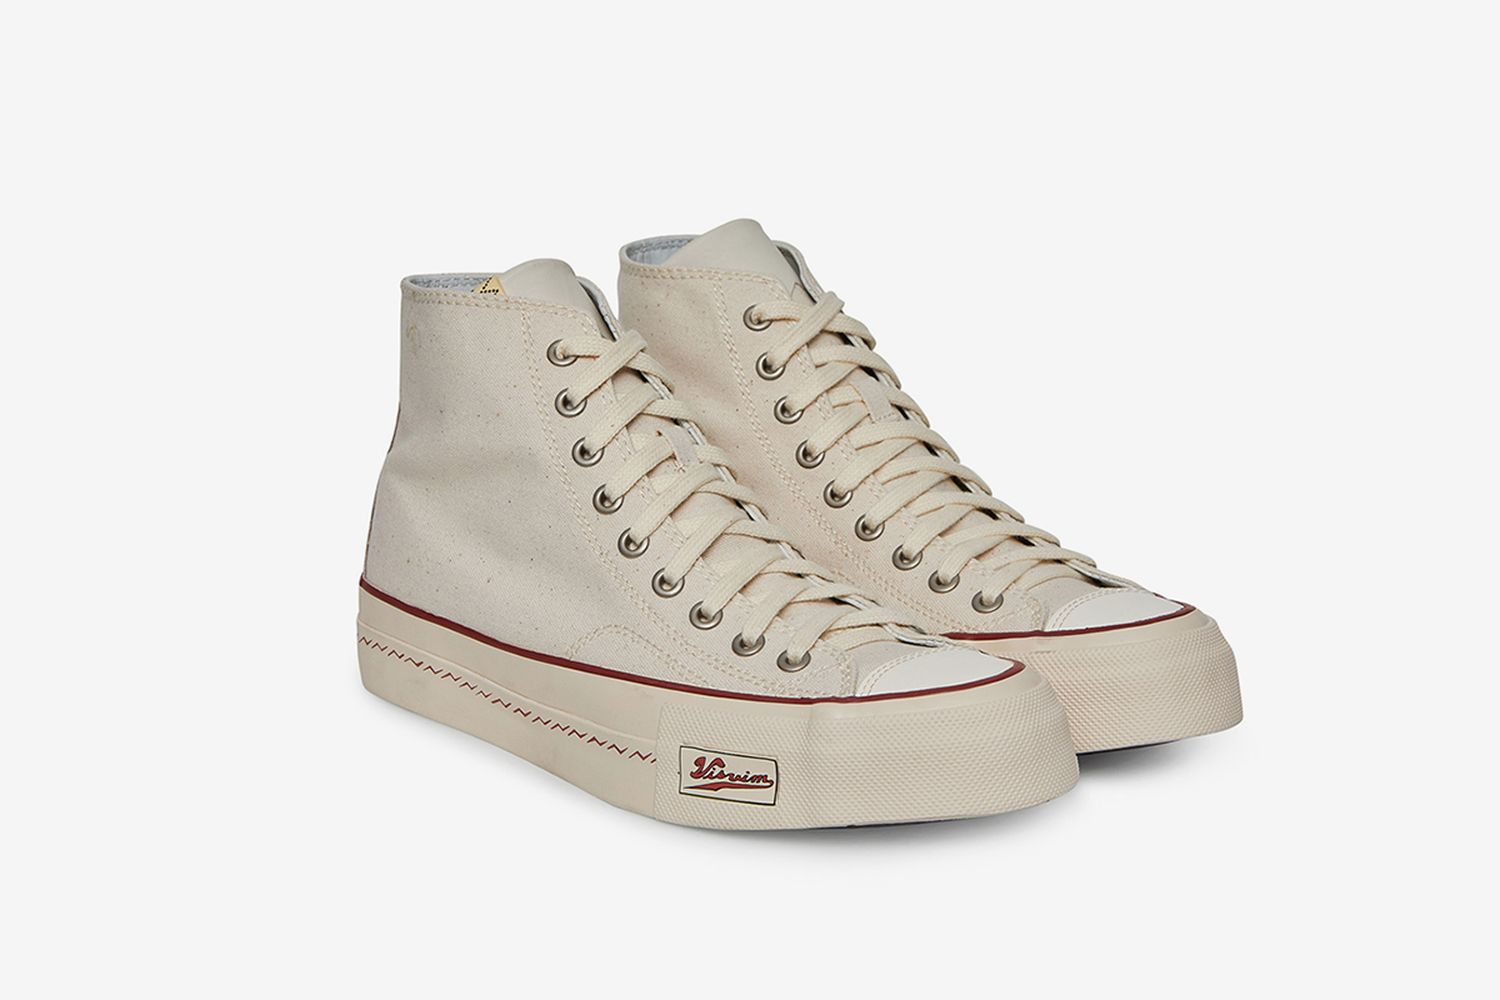 Skagway Hi Patten High Sneakers